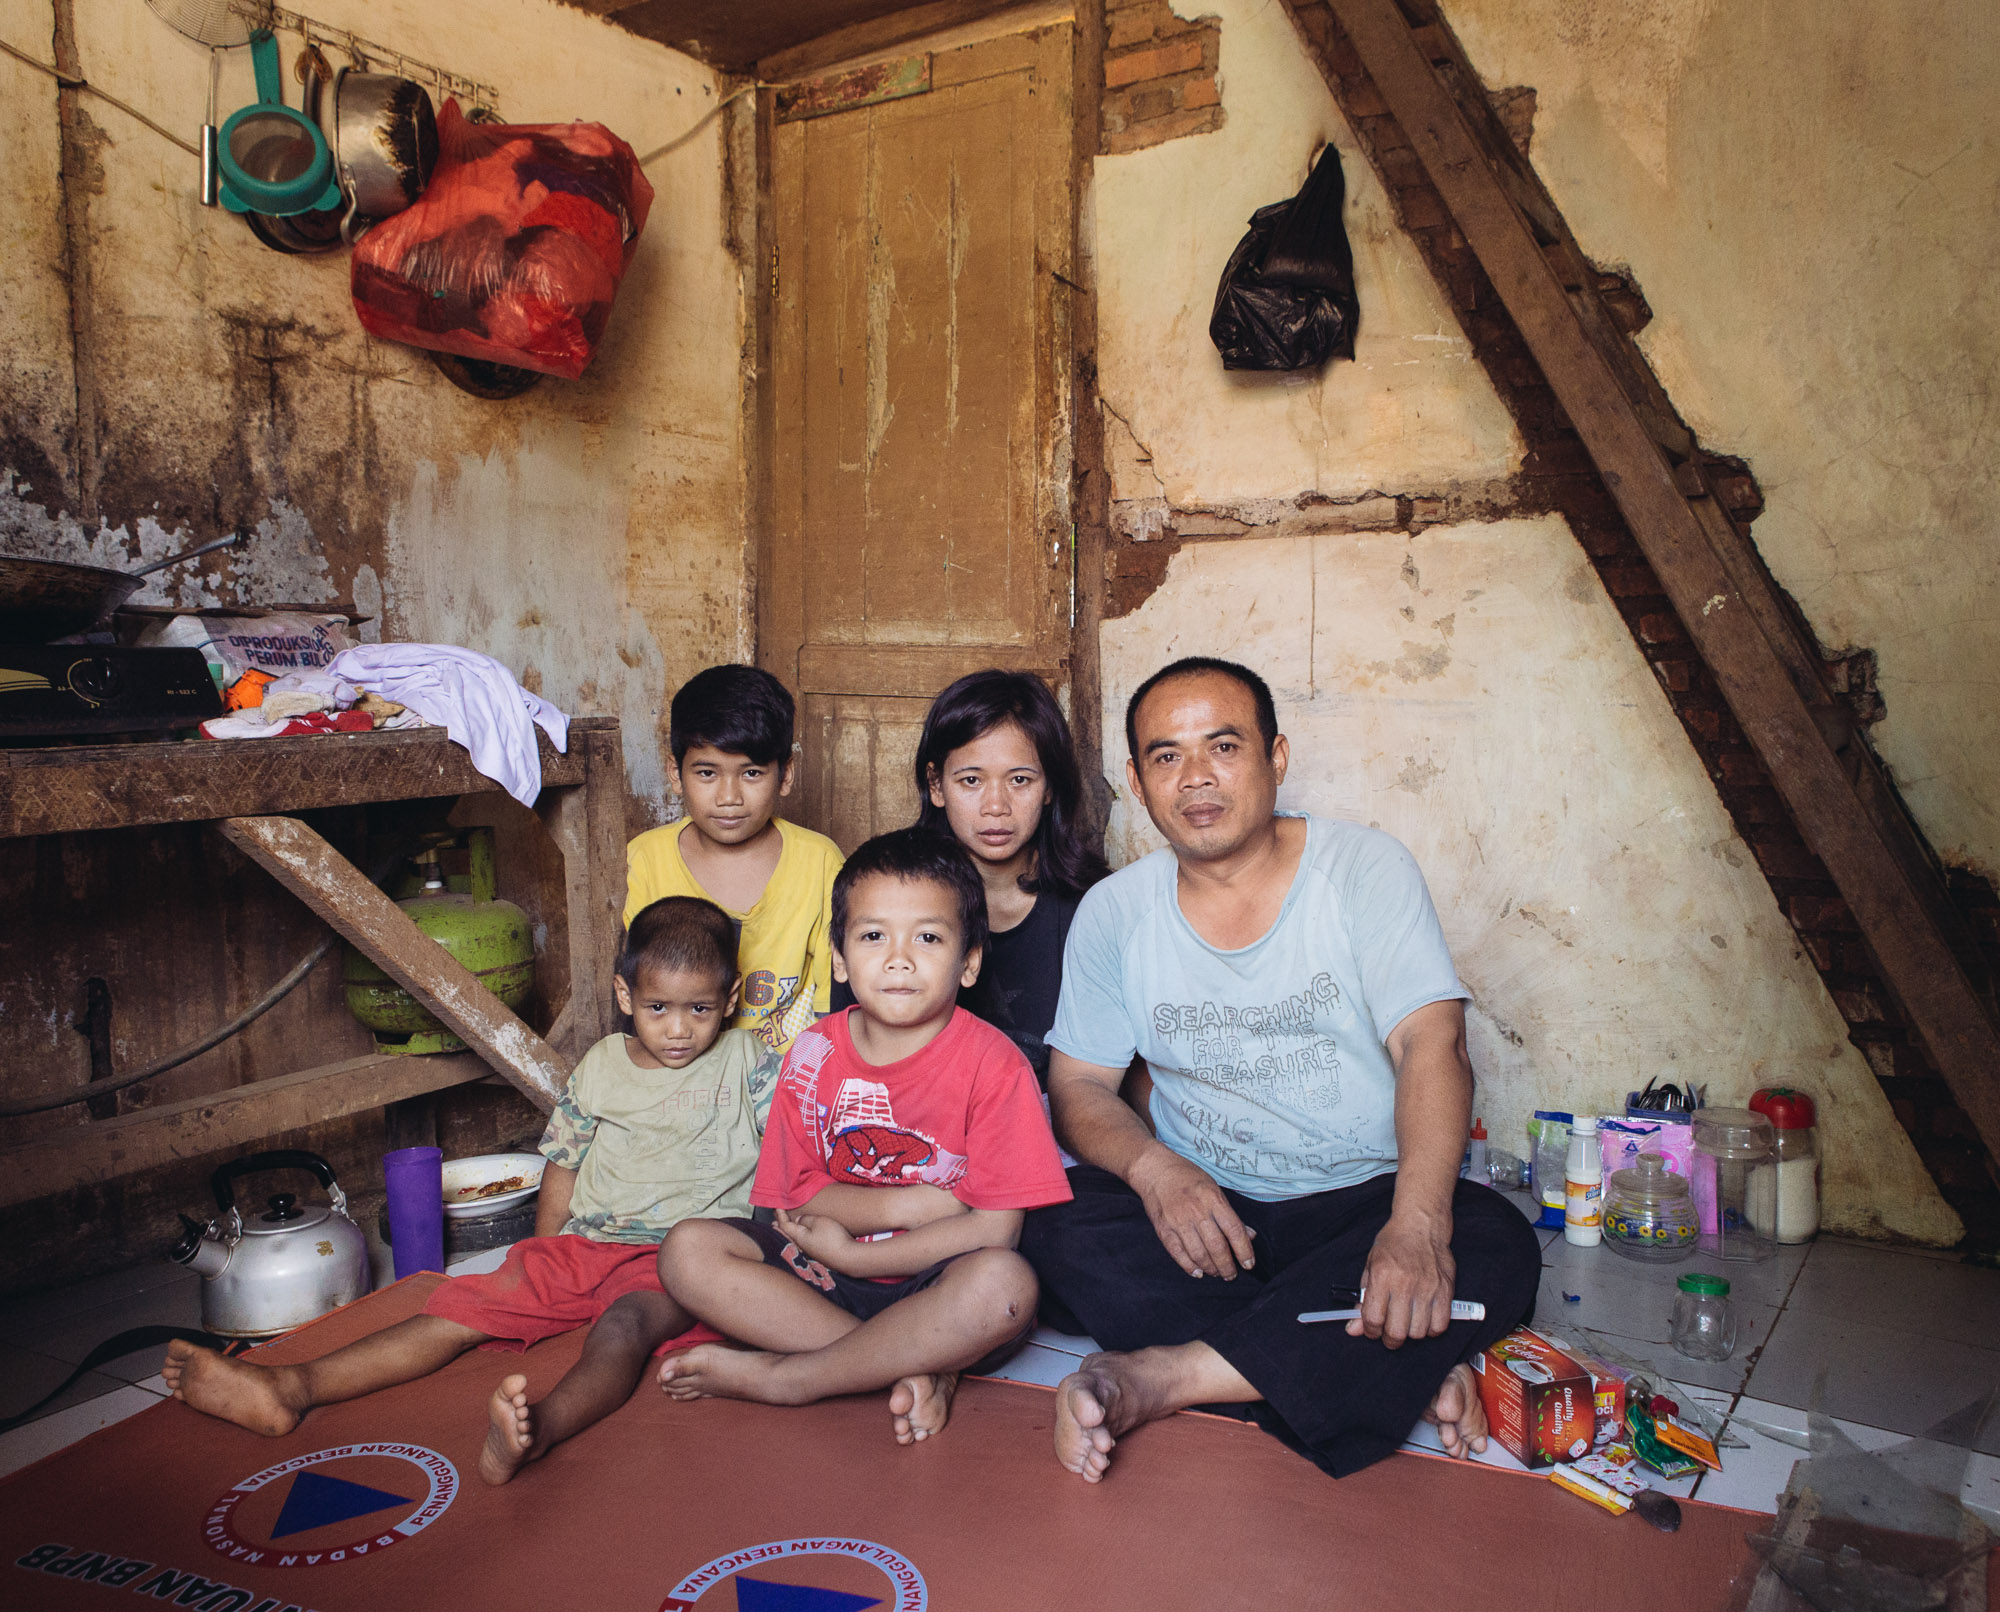 Residents living on the bank of the Ciliwung River pose for a photo in Kampung Melayu. Muhammad Syarifudin and Emi Wijayanti sit along with their three children. (Photo by Muhammad Fadli/GroundTruth)